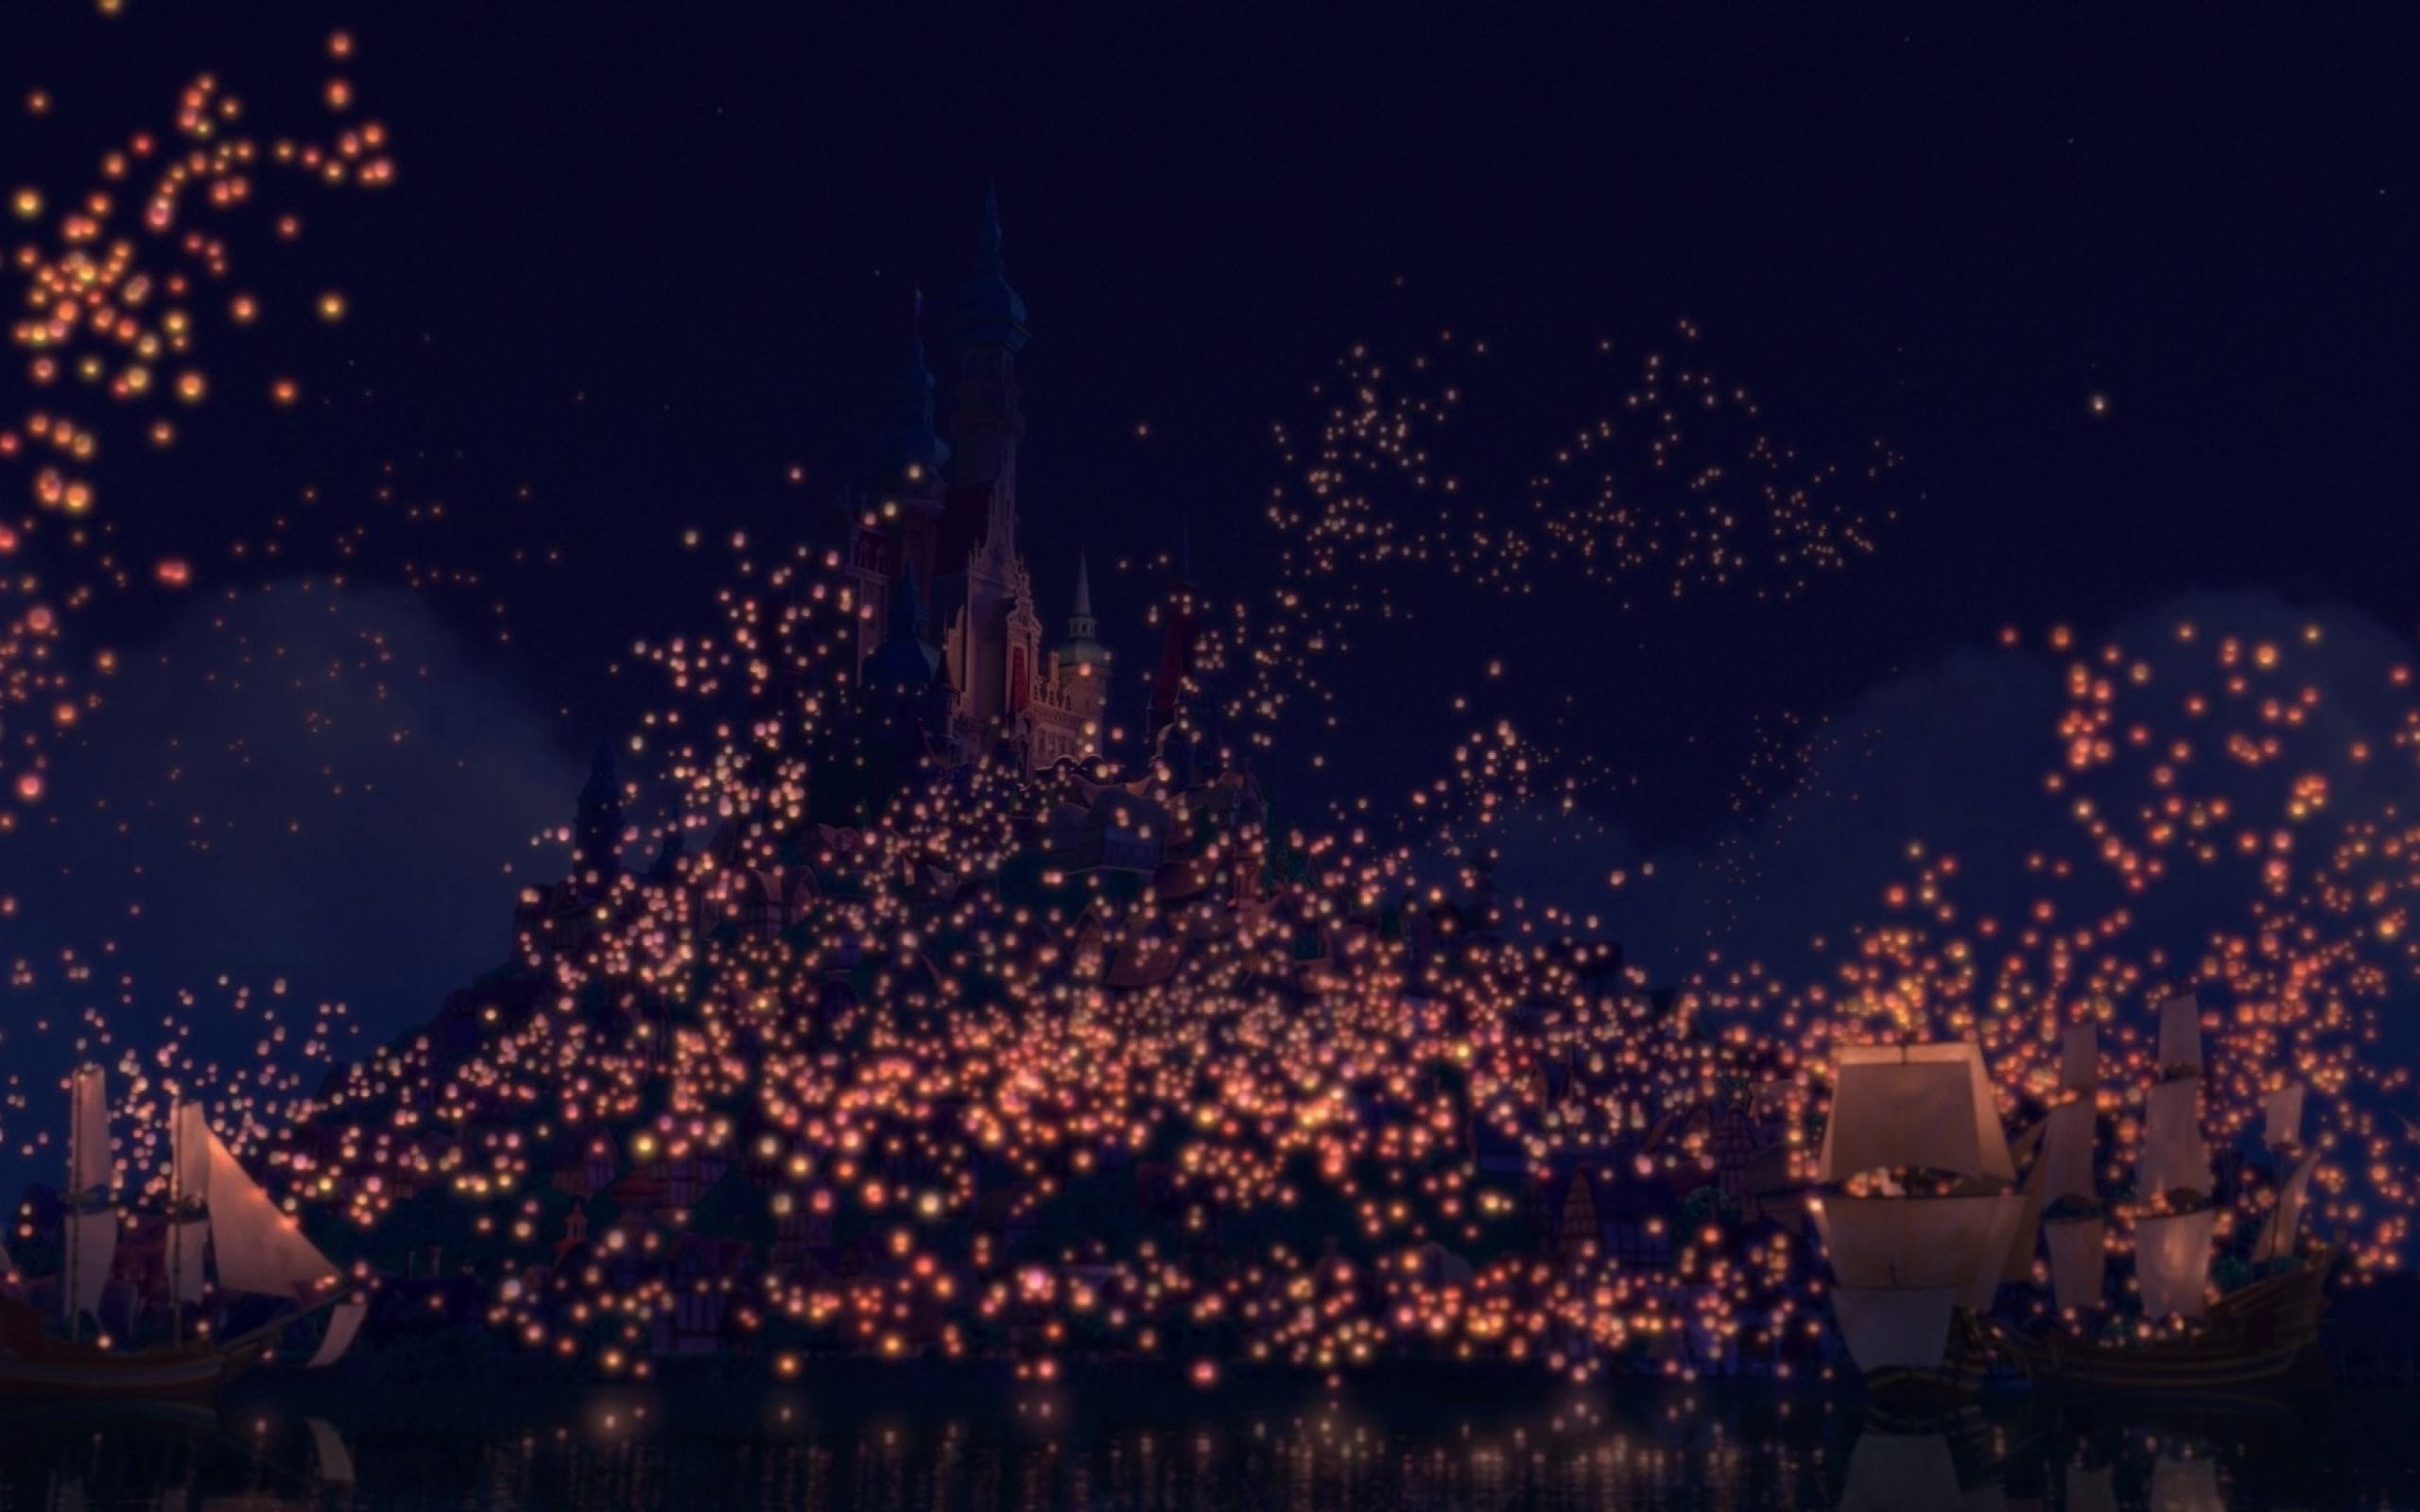 Wallpapers Backgrounds Tangled Lanterns Iphone Wallpaper